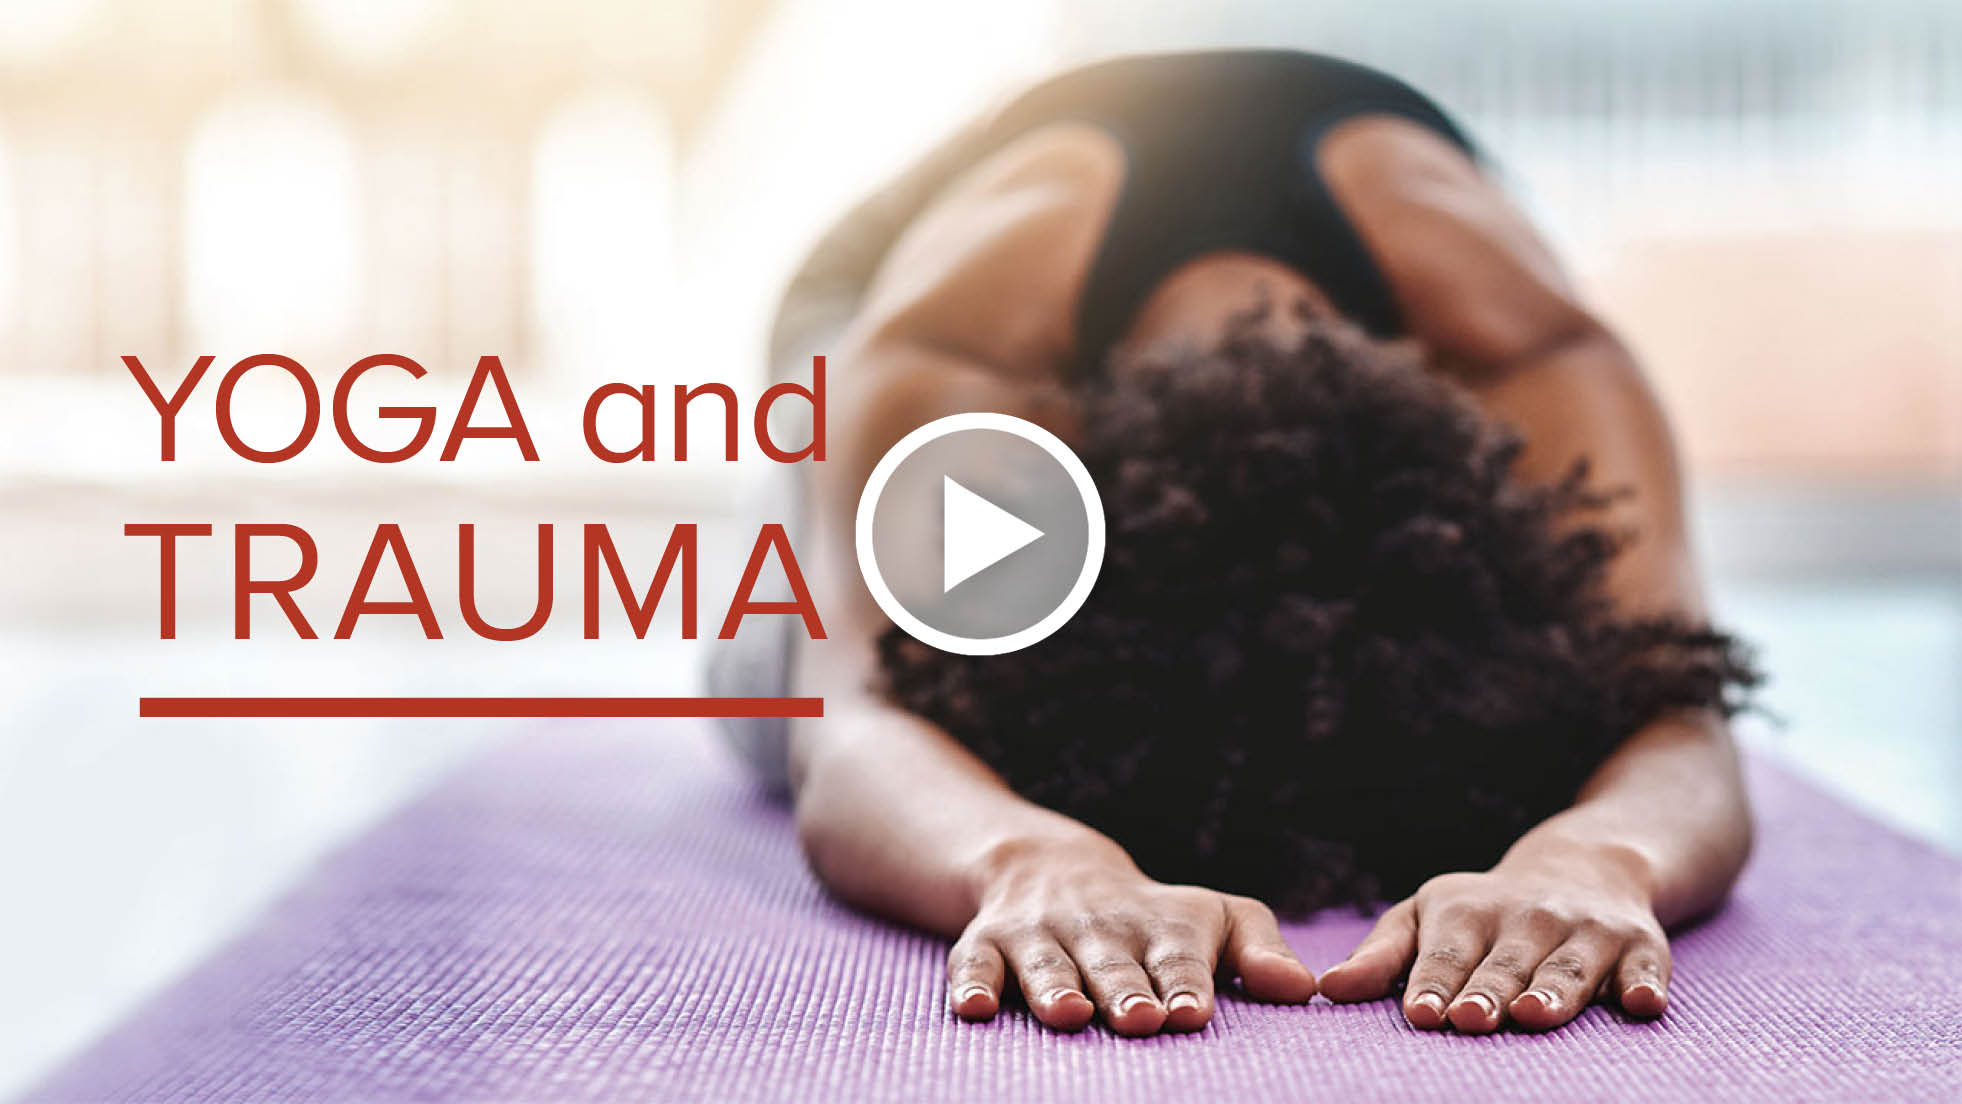 Yoga and Trauma